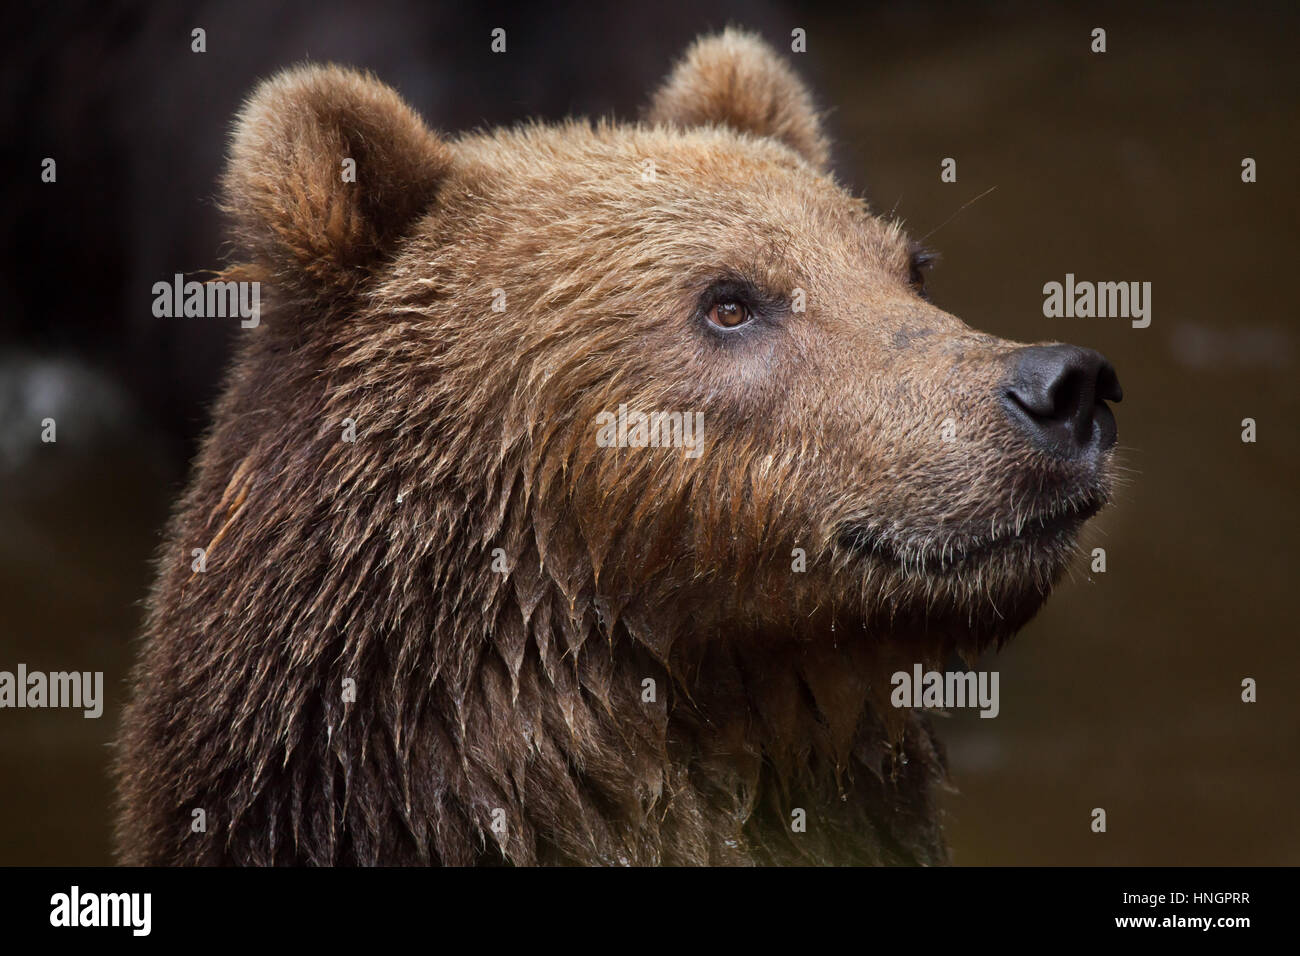 Kamchatka brown bear (Ursus arctos beringianus), also known as the Far Eastern brown bear. - Stock Image